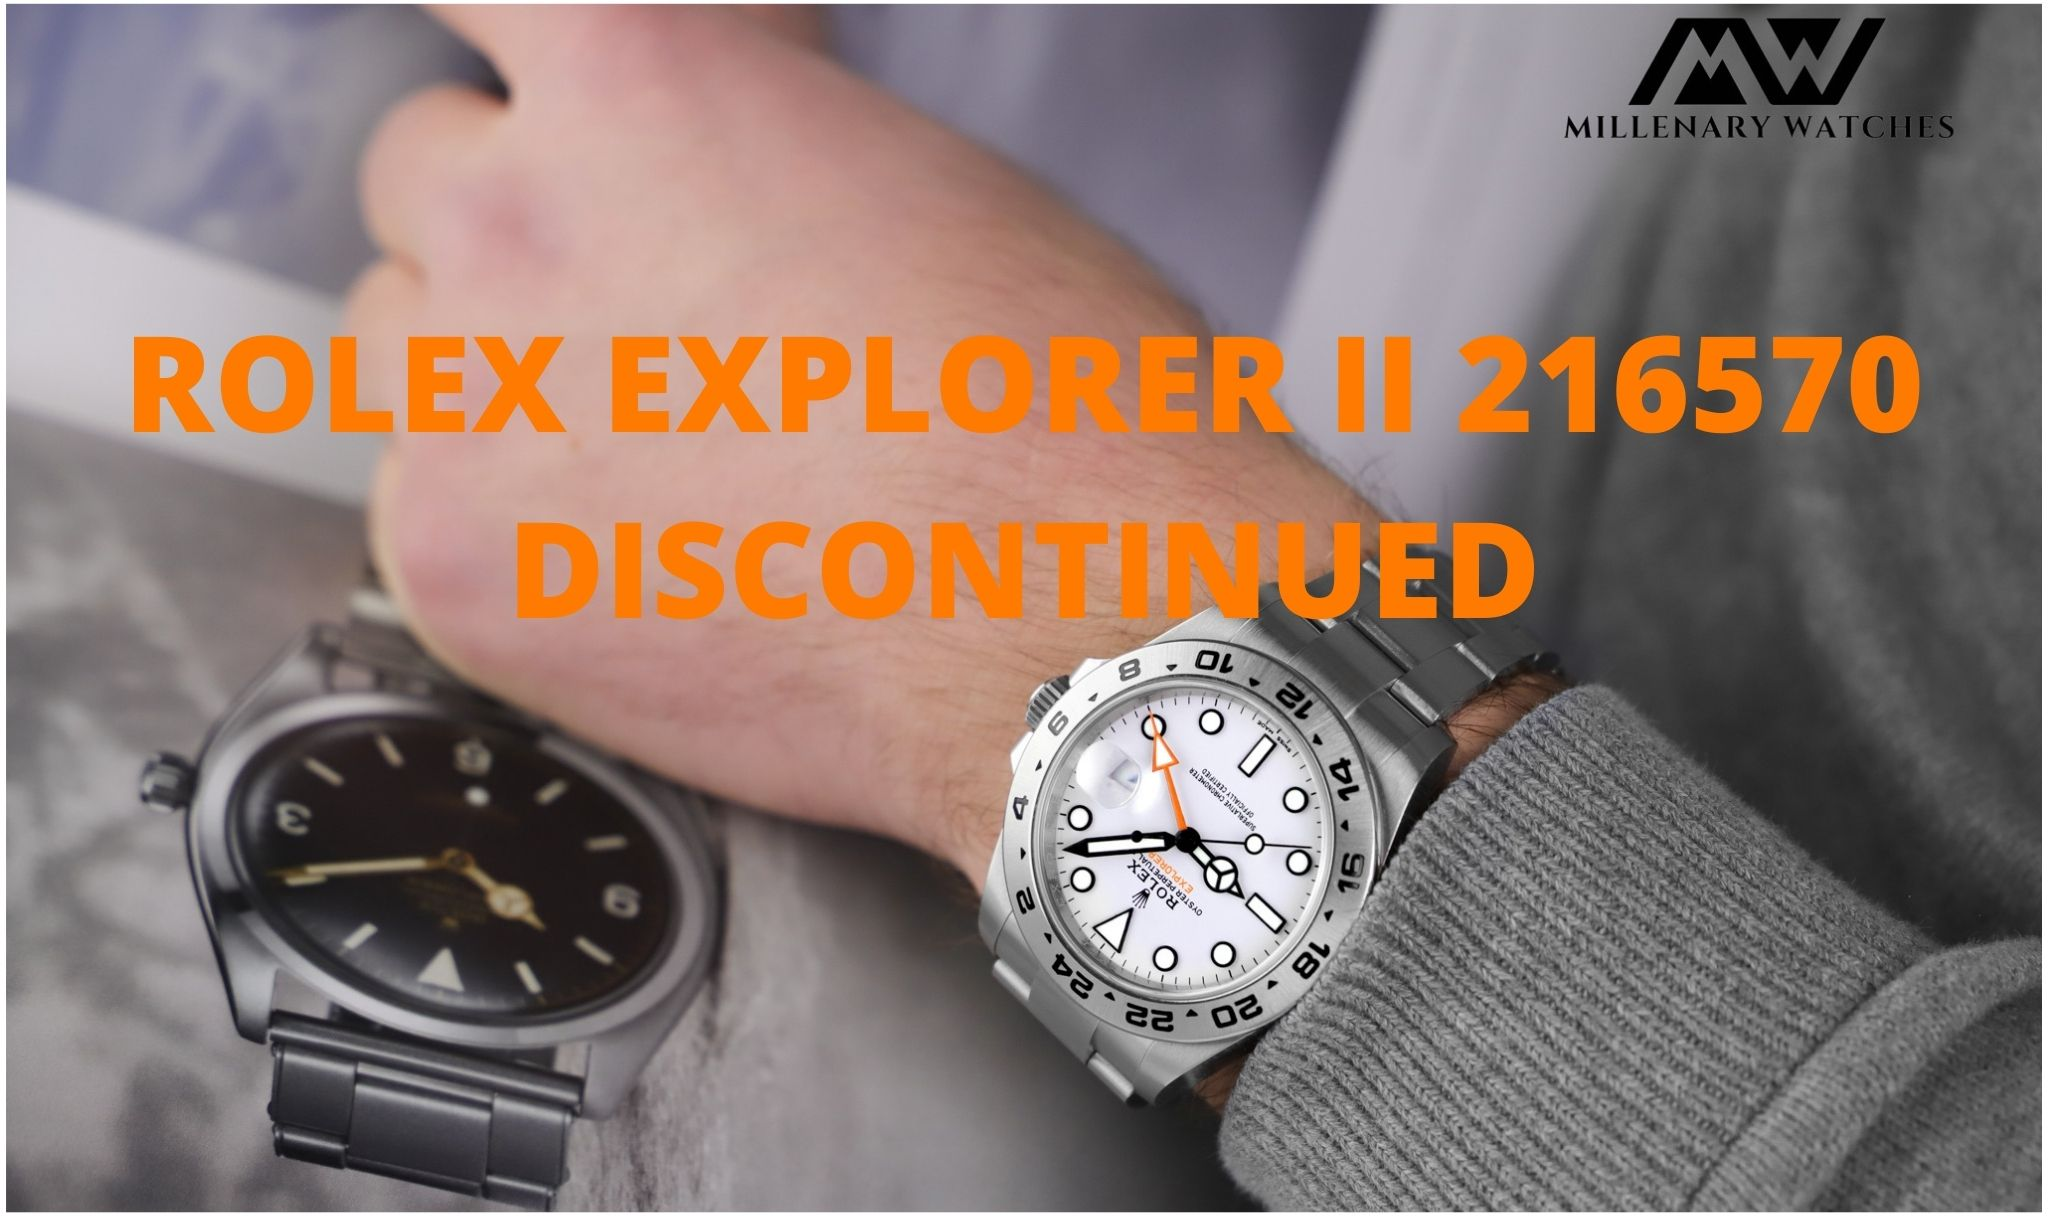 Rolex Explorer II 216570 Officially Discontinued!